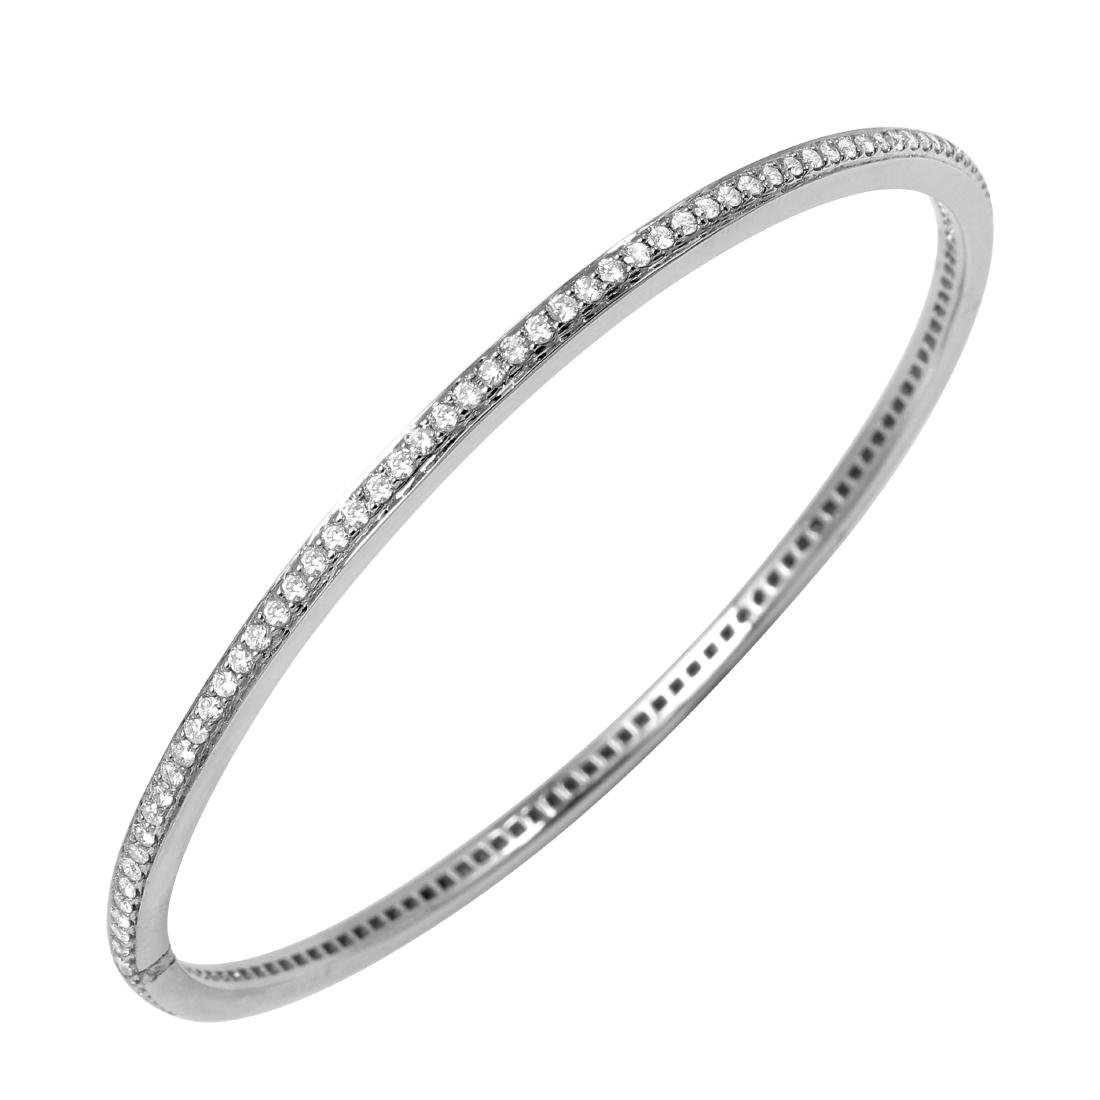 14KT White Gold Diamond Bangle Bracelet - 4